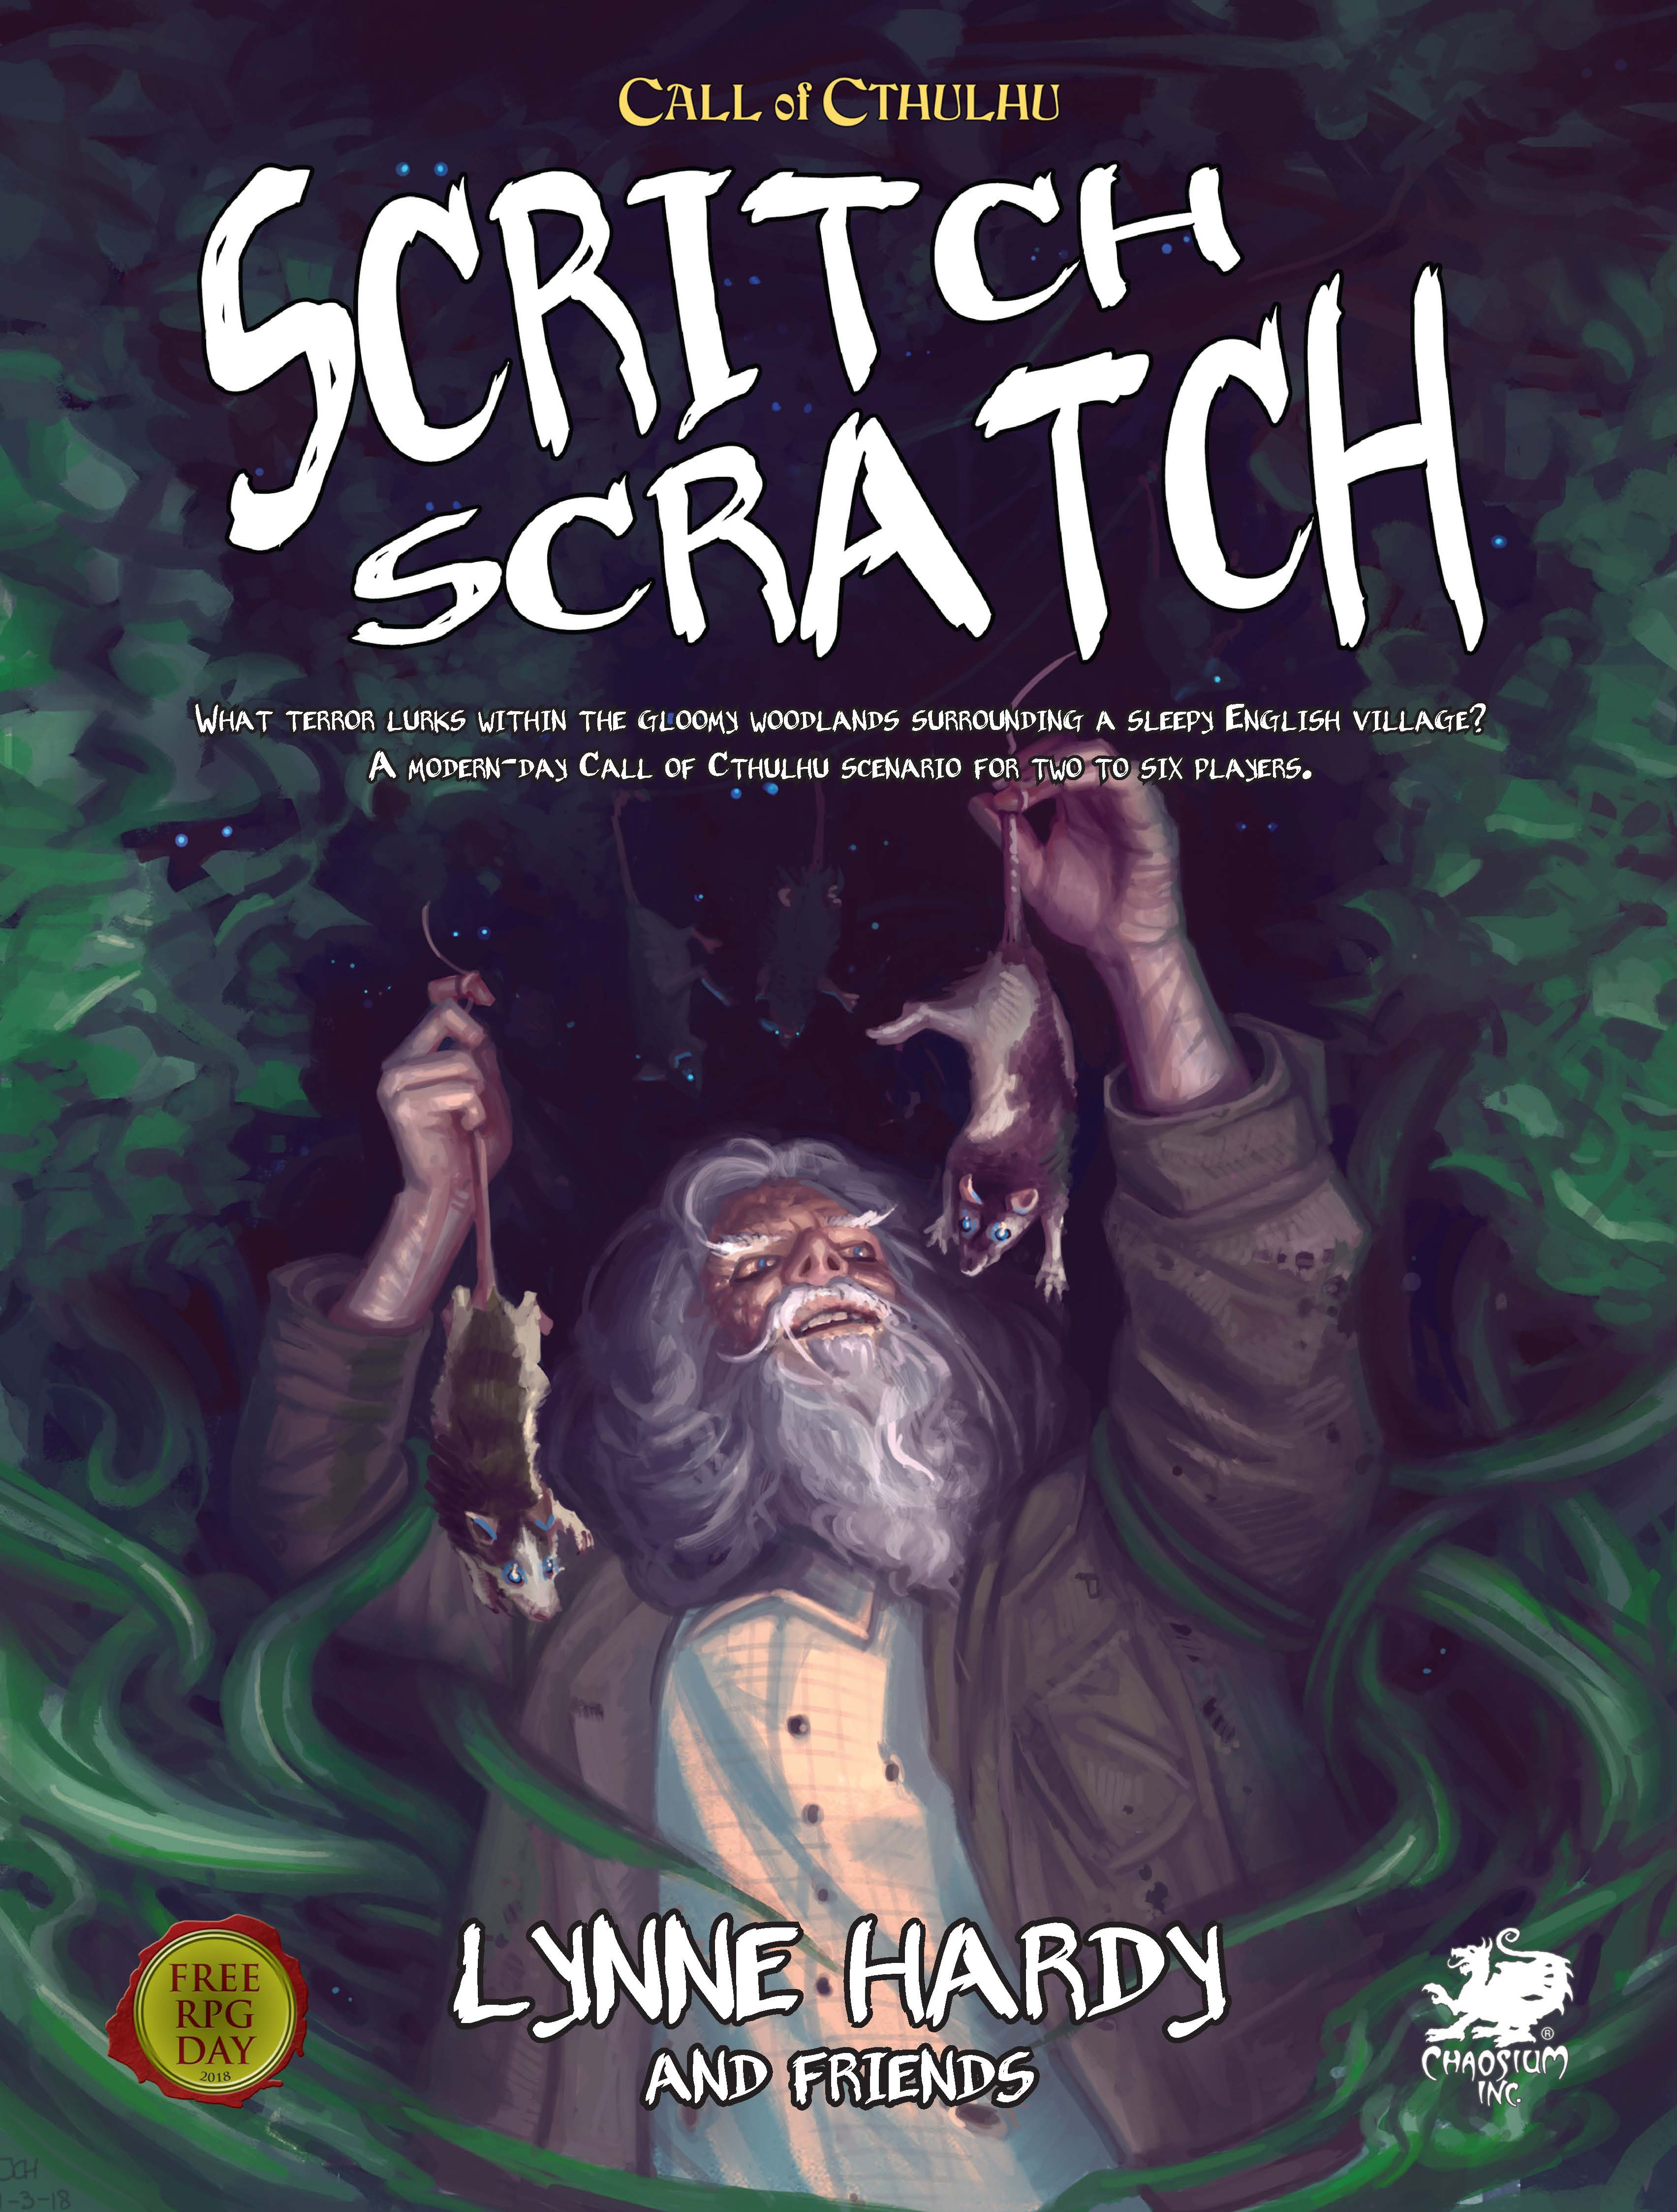 Scritch Scratch by Lynne Hardy